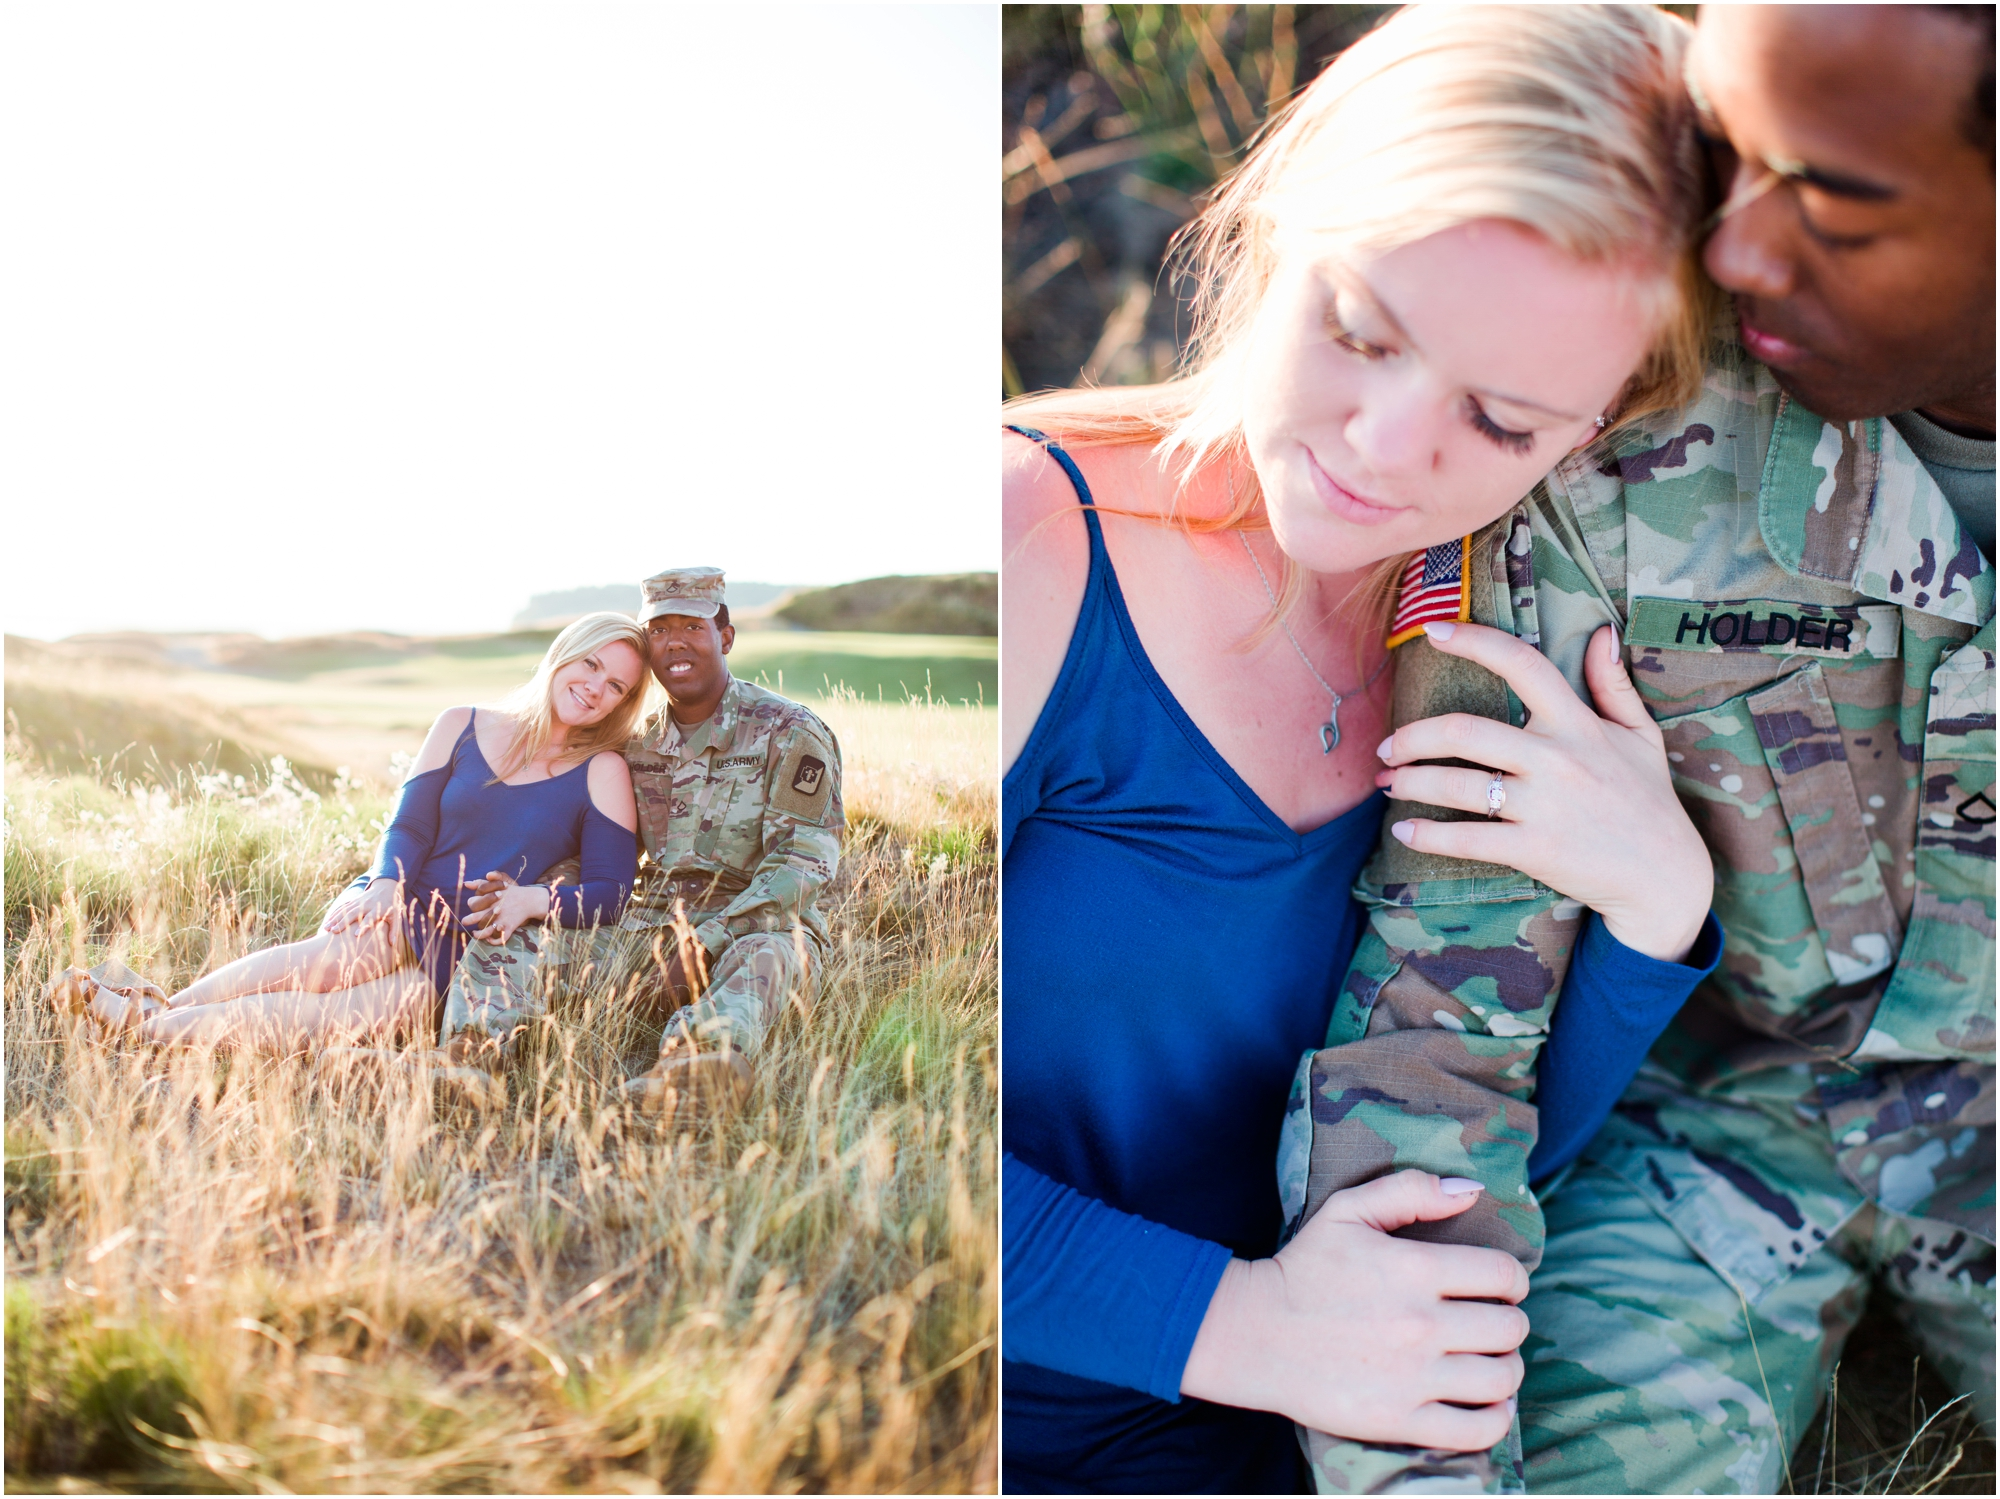 Chambers Bay engagement shoot in Tacoma, WA. Photos by Briana Calderon Photography based in the greater Seattle Area._1246.jpg